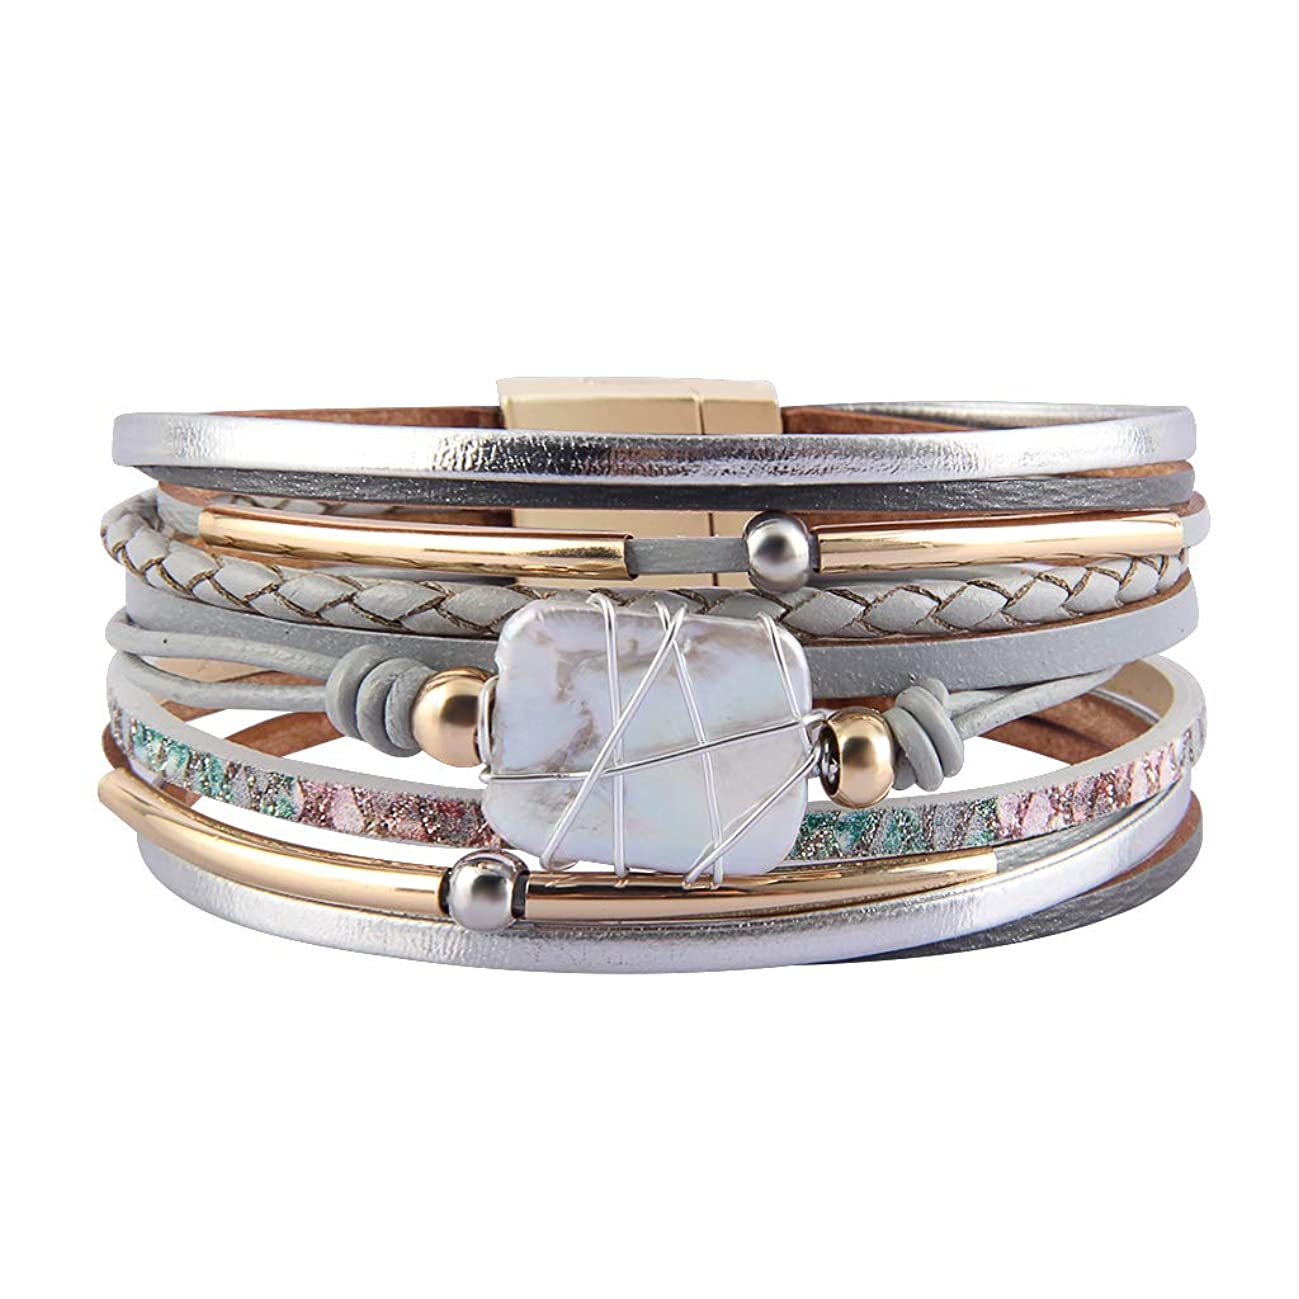 AZORA Leather Cuff Bracelet Multi Rope Wrap Bangle with Pearl Metallic Heart Cuffs Bracelets for Women Teen Girl Gift